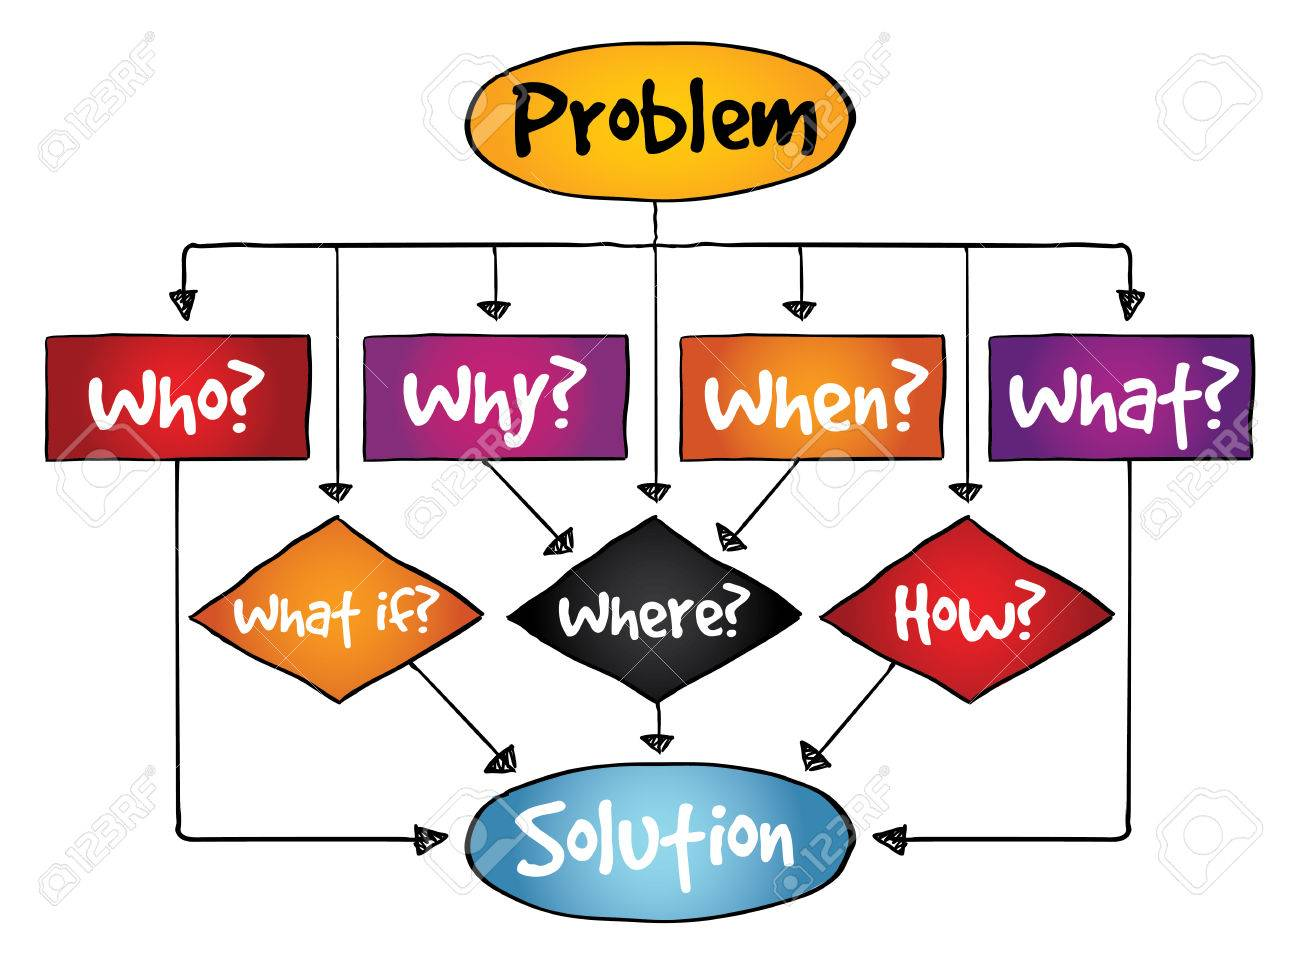 Problem solution flow chart with basic questions business concept problem solution flow chart with basic questions business concept stock vector 37226366 ccuart Gallery